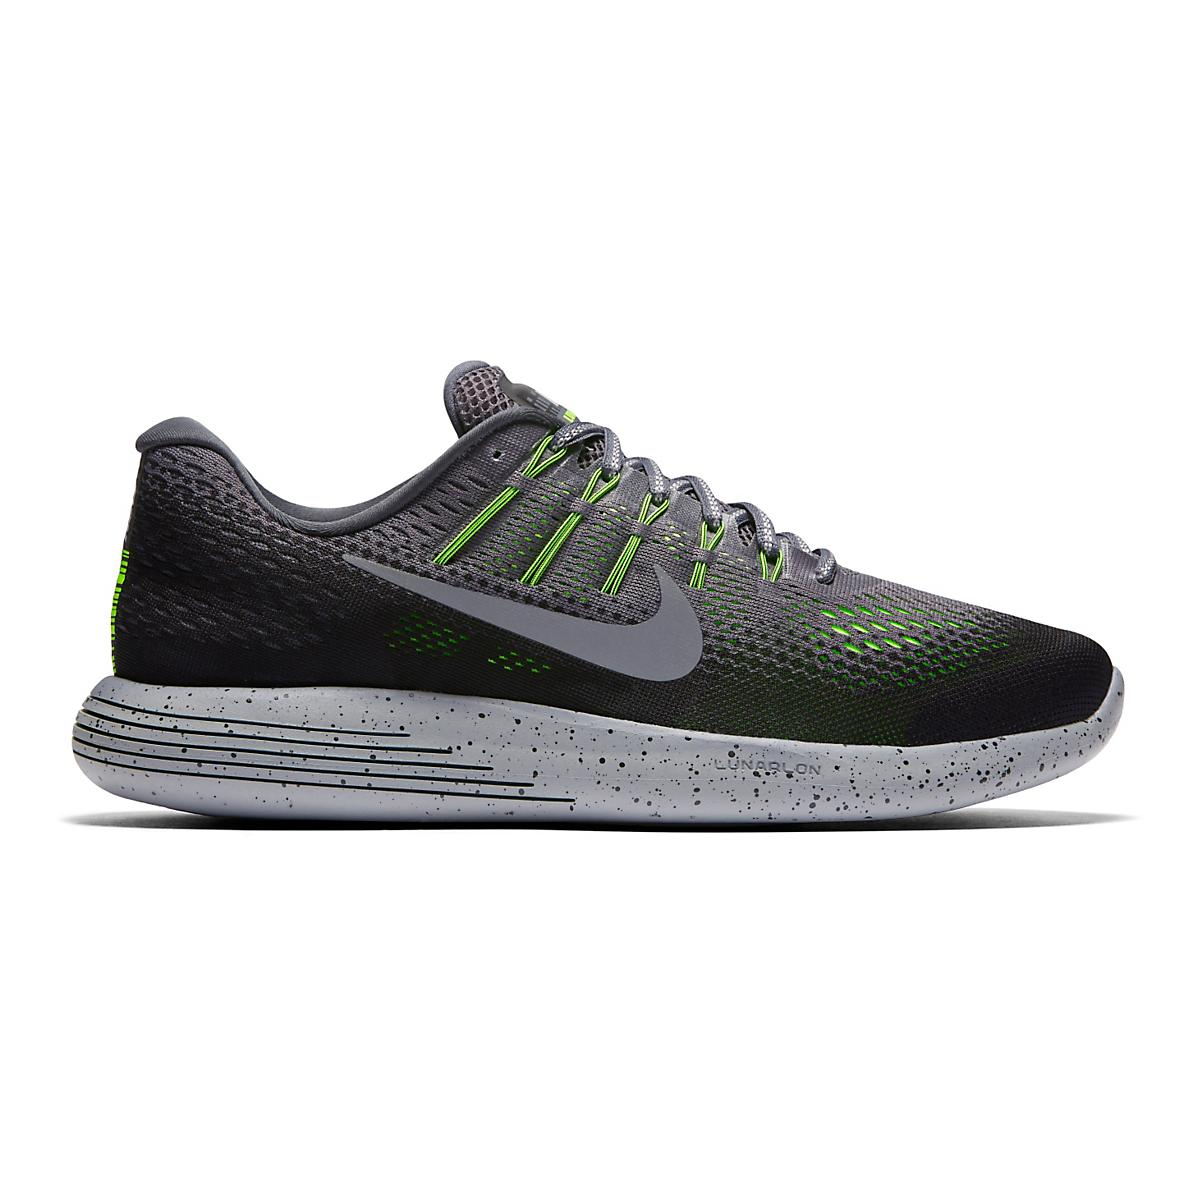 detailed look 9d06d e9fe5 Mens Nike LunarGlide 8 Shield Running Shoe at Road Runner Sports